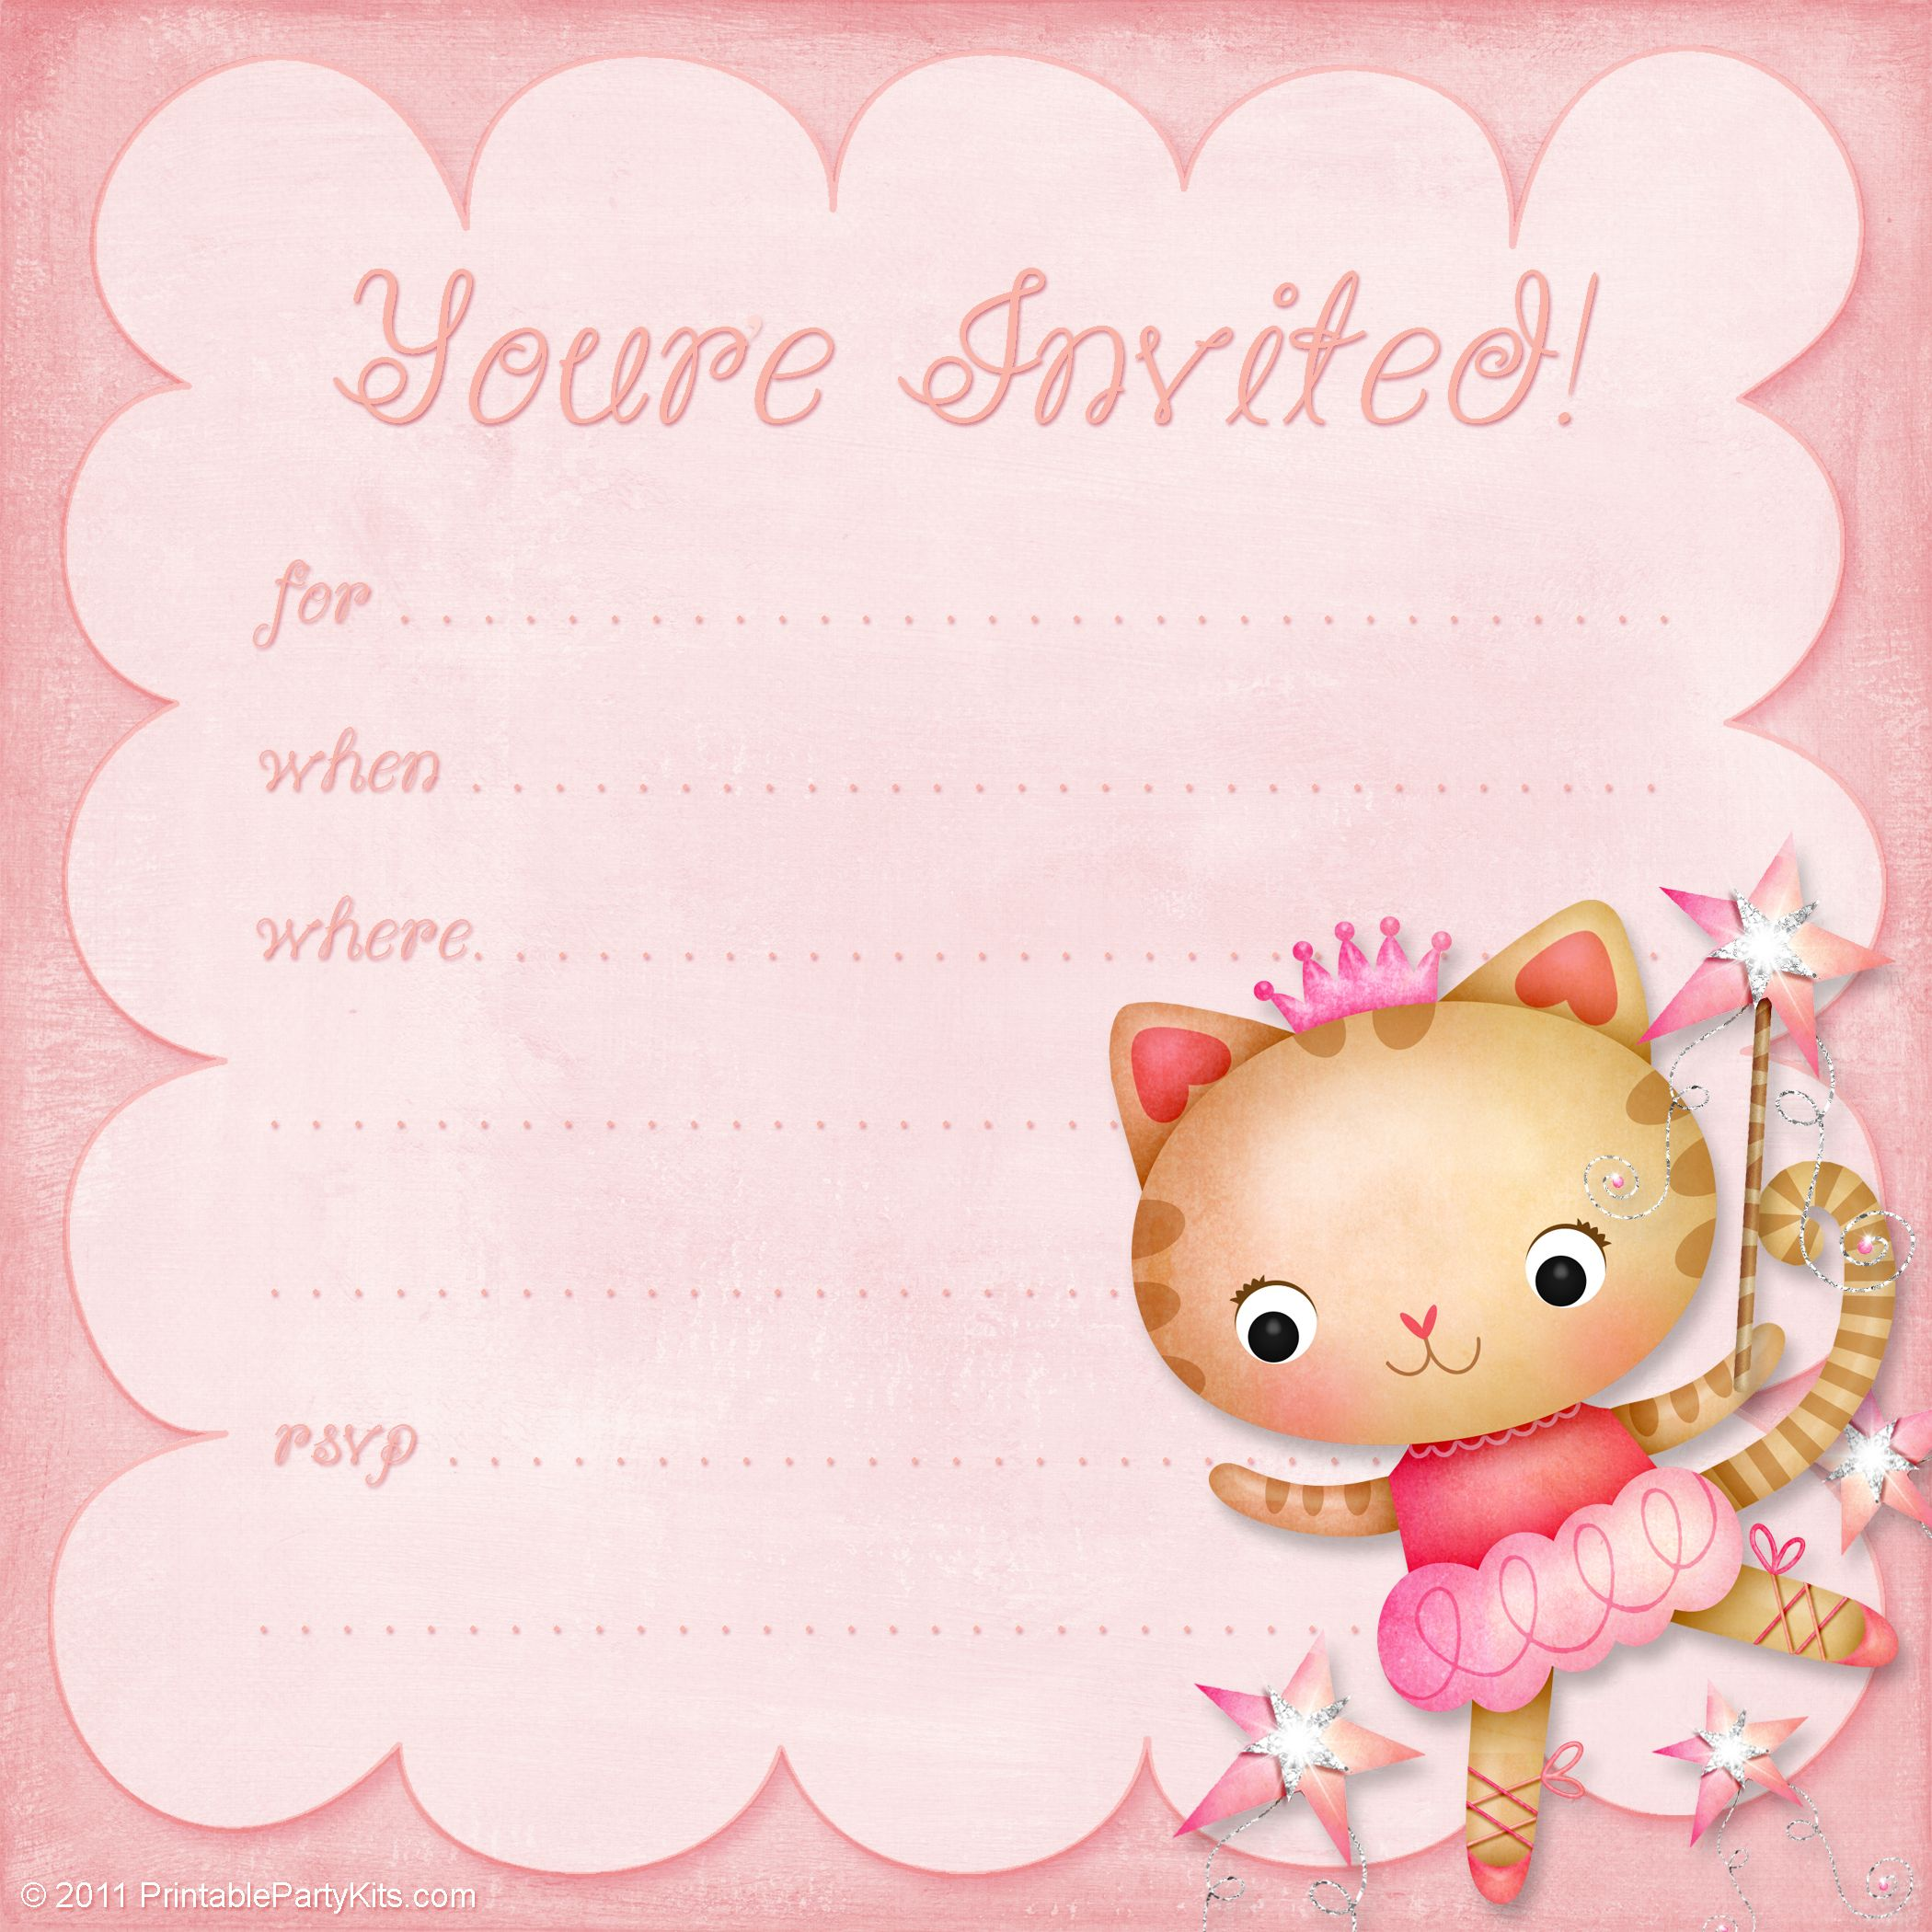 Free Birthday Party Invitation Template Birthday Party - Birthday party invitation cards to print